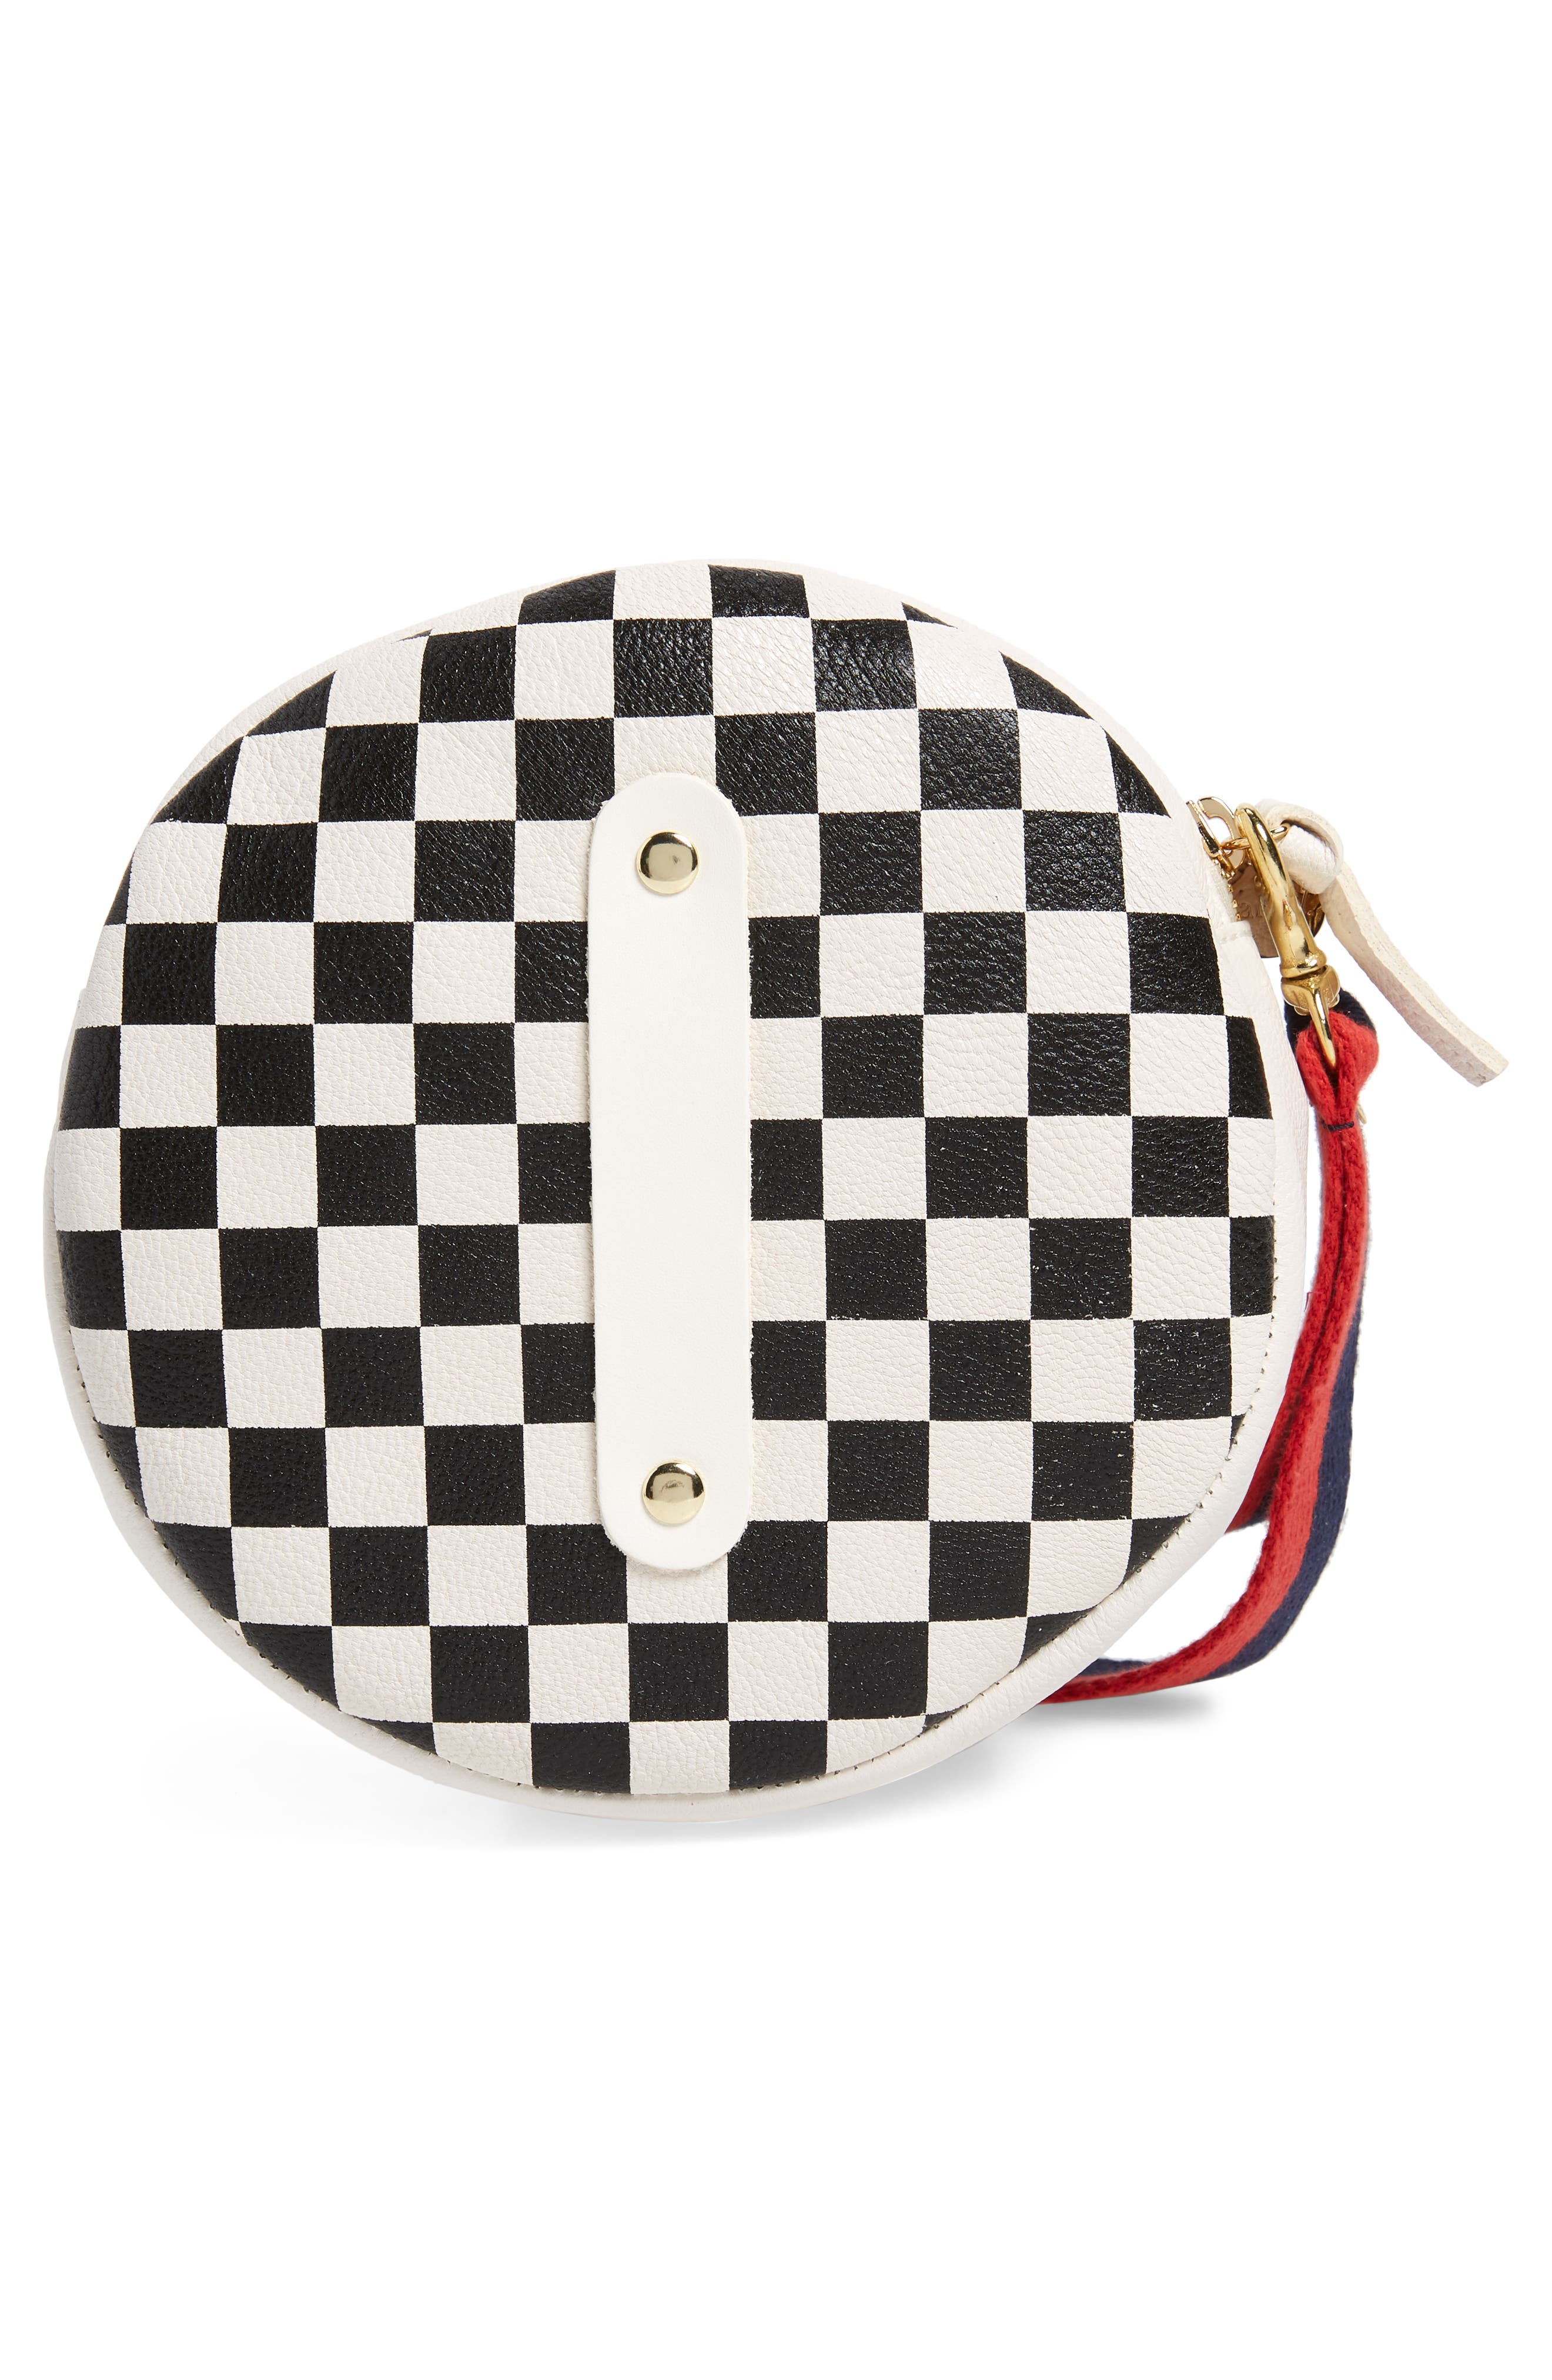 Checkered Leather Circle Clutch,                             Alternate thumbnail 3, color,                             Cream/ Black Checker